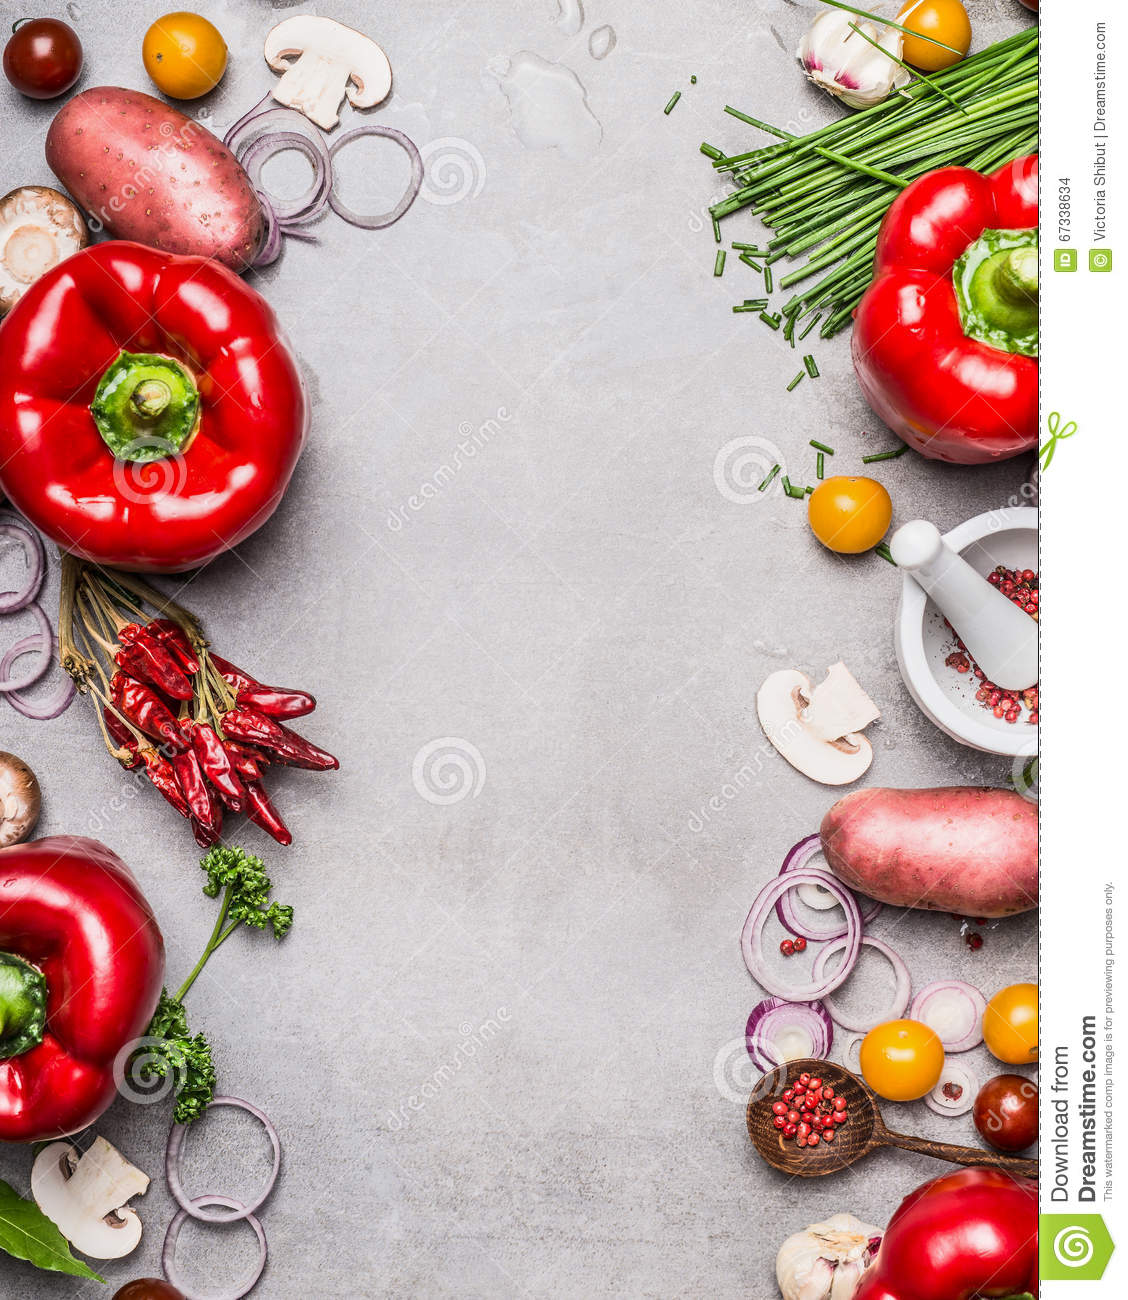 Red Paprika And Diverse Vegetables And Cooking Ingredients On Gray Stone Background, Top View ...